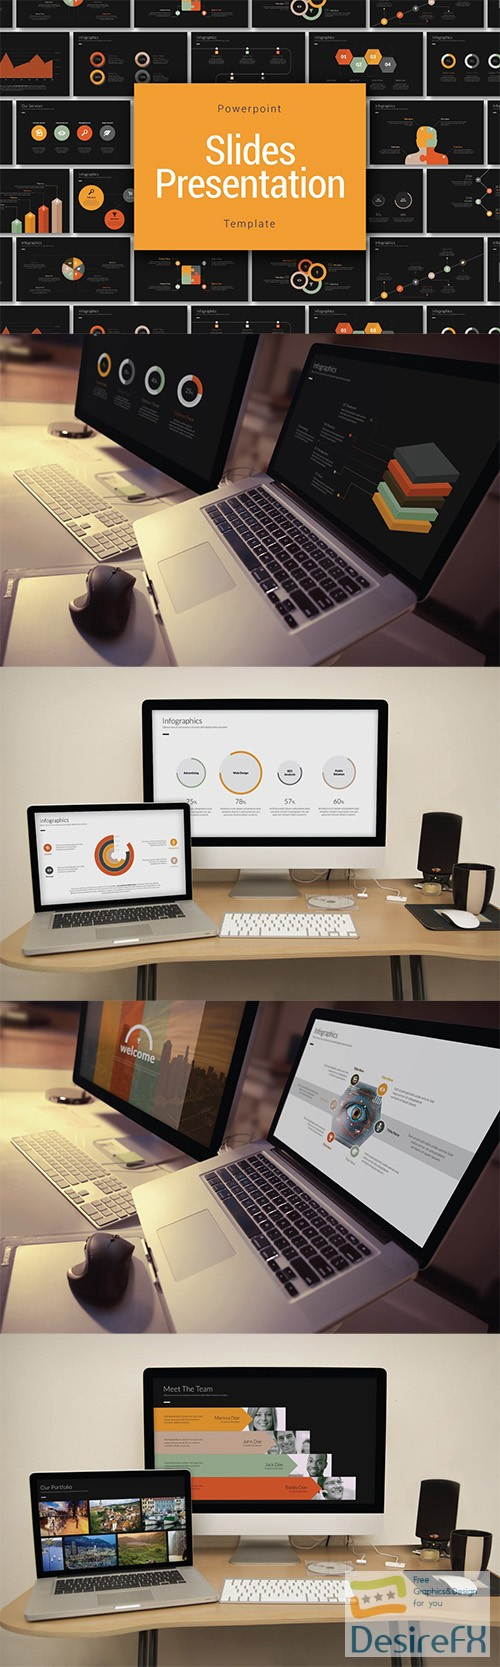 powerpoint - Company Presentation Template - PPTX